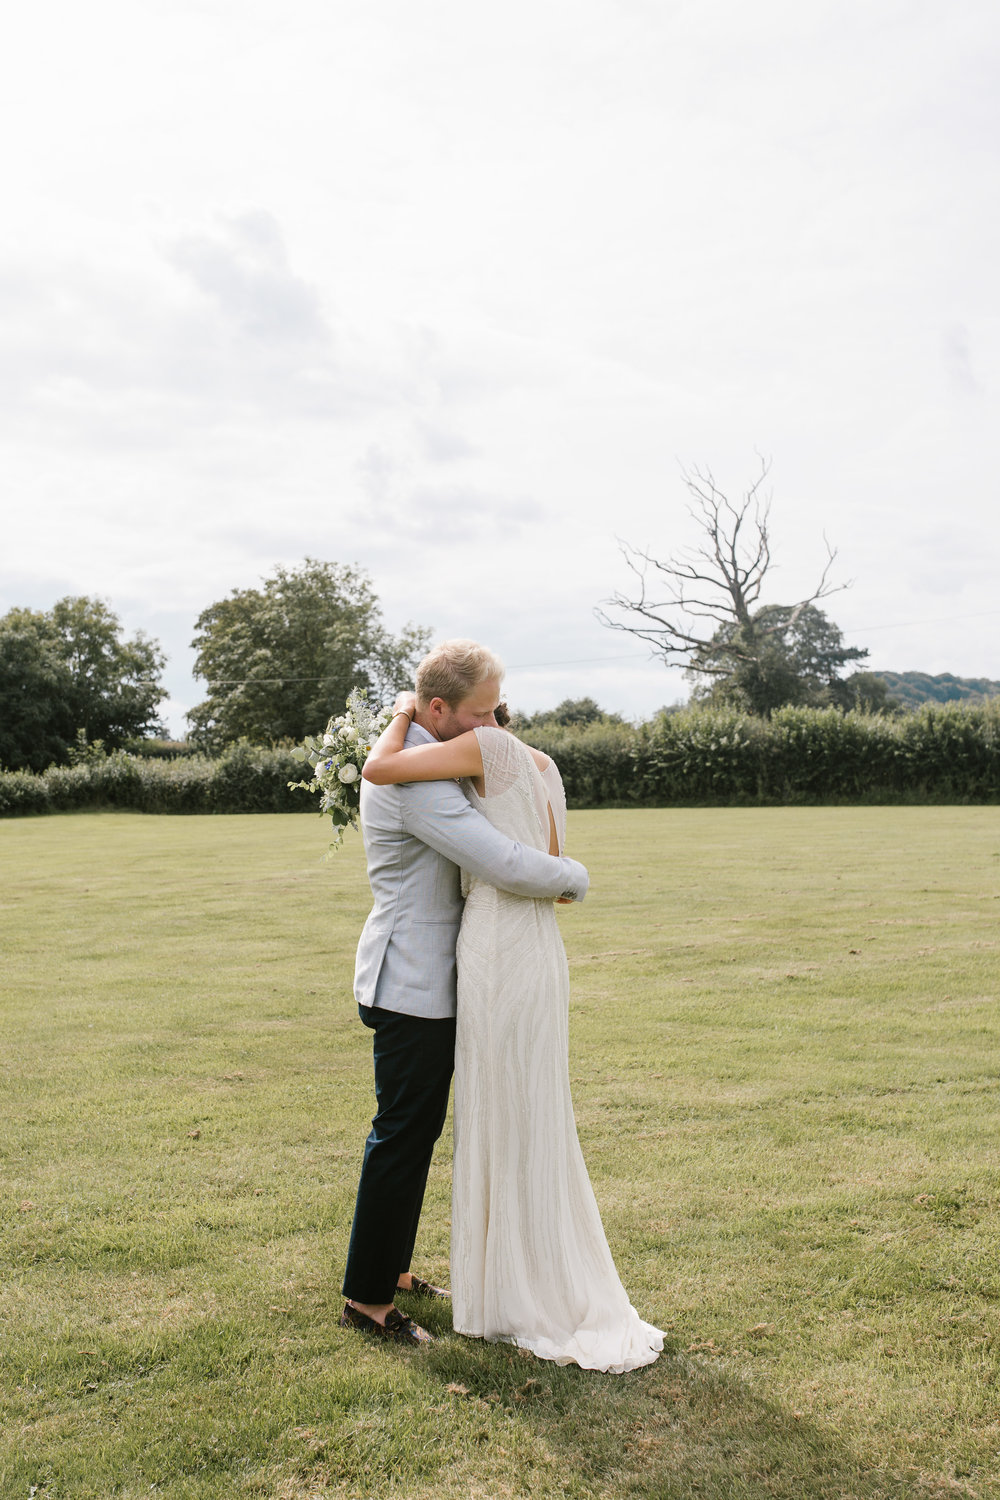 natural photo of bride and groom hugging after their outdoor wedding ceremony